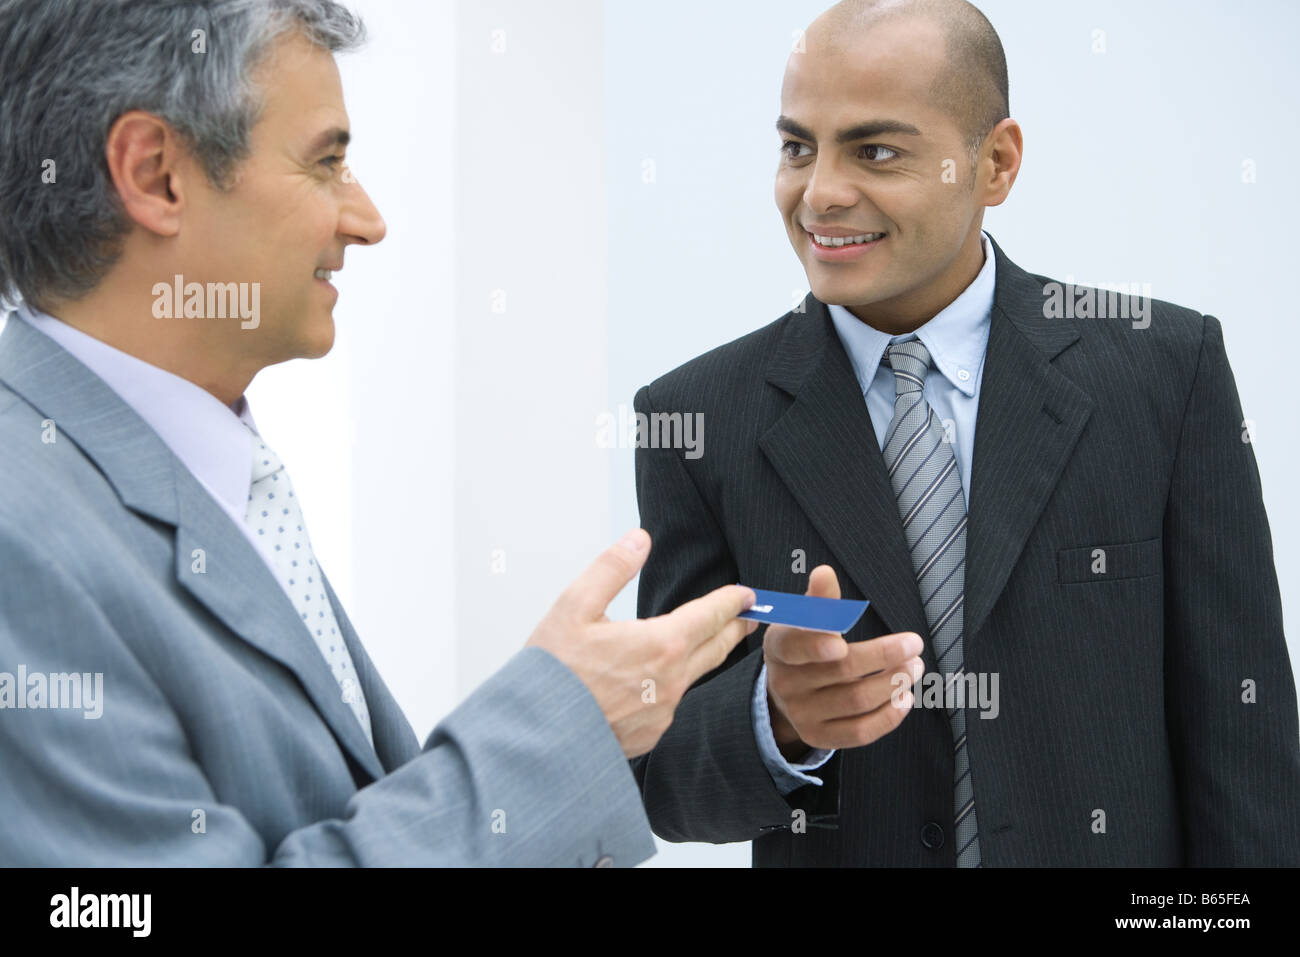 Handing out business cards stock photos handing out business cards two businessmen exchanging business card stock image colourmoves